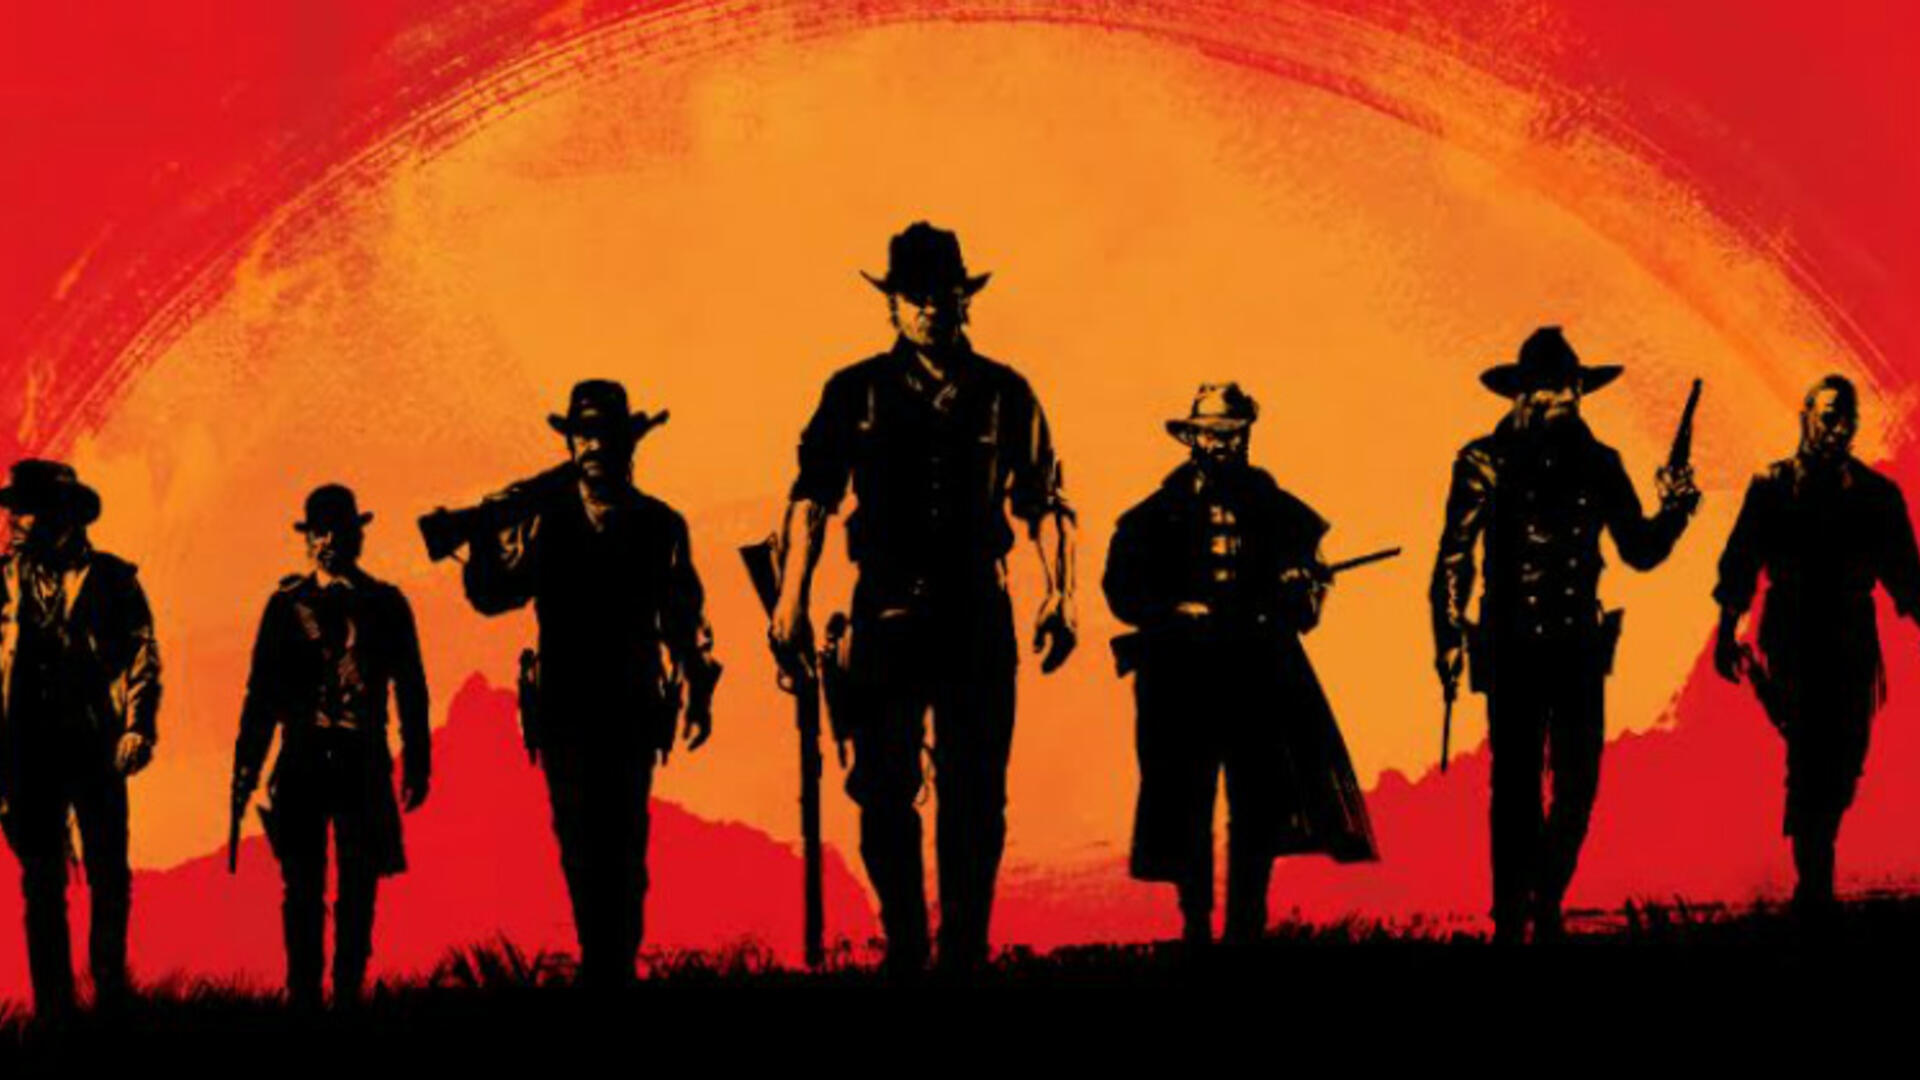 Red Dead Redemption 2, God of War Tie for Most Nominations at The Game Awards